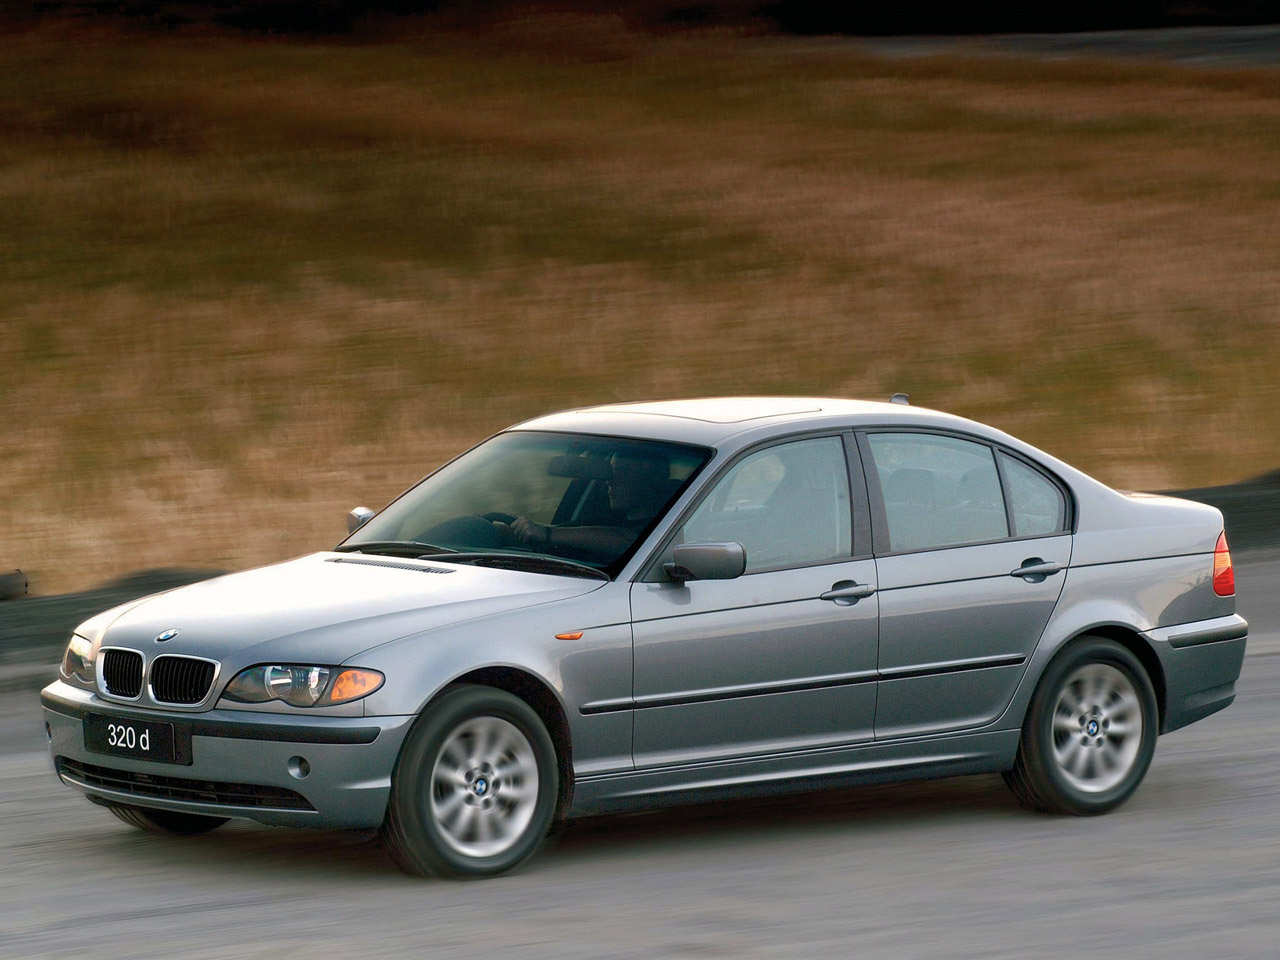 BMW 3 series 320d 2005 photo - 7